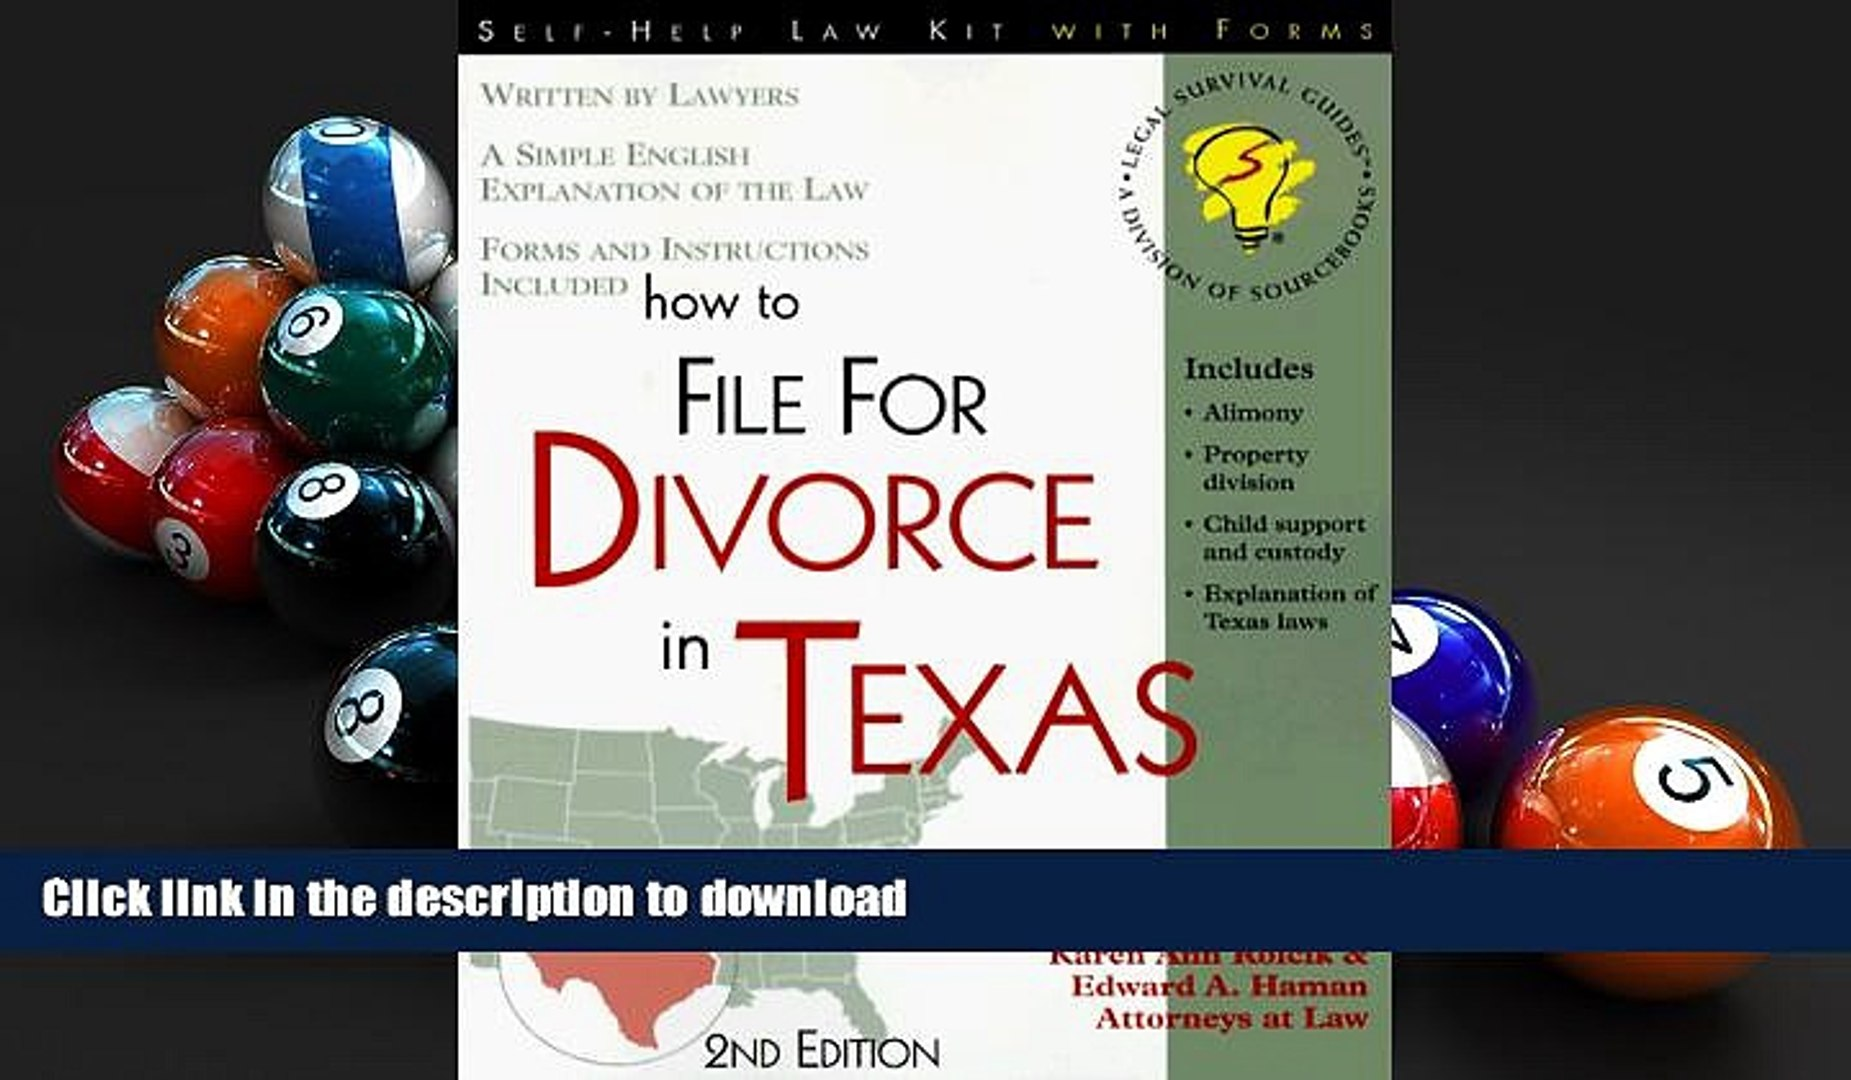 Free Forms To File For Divorce In Texas